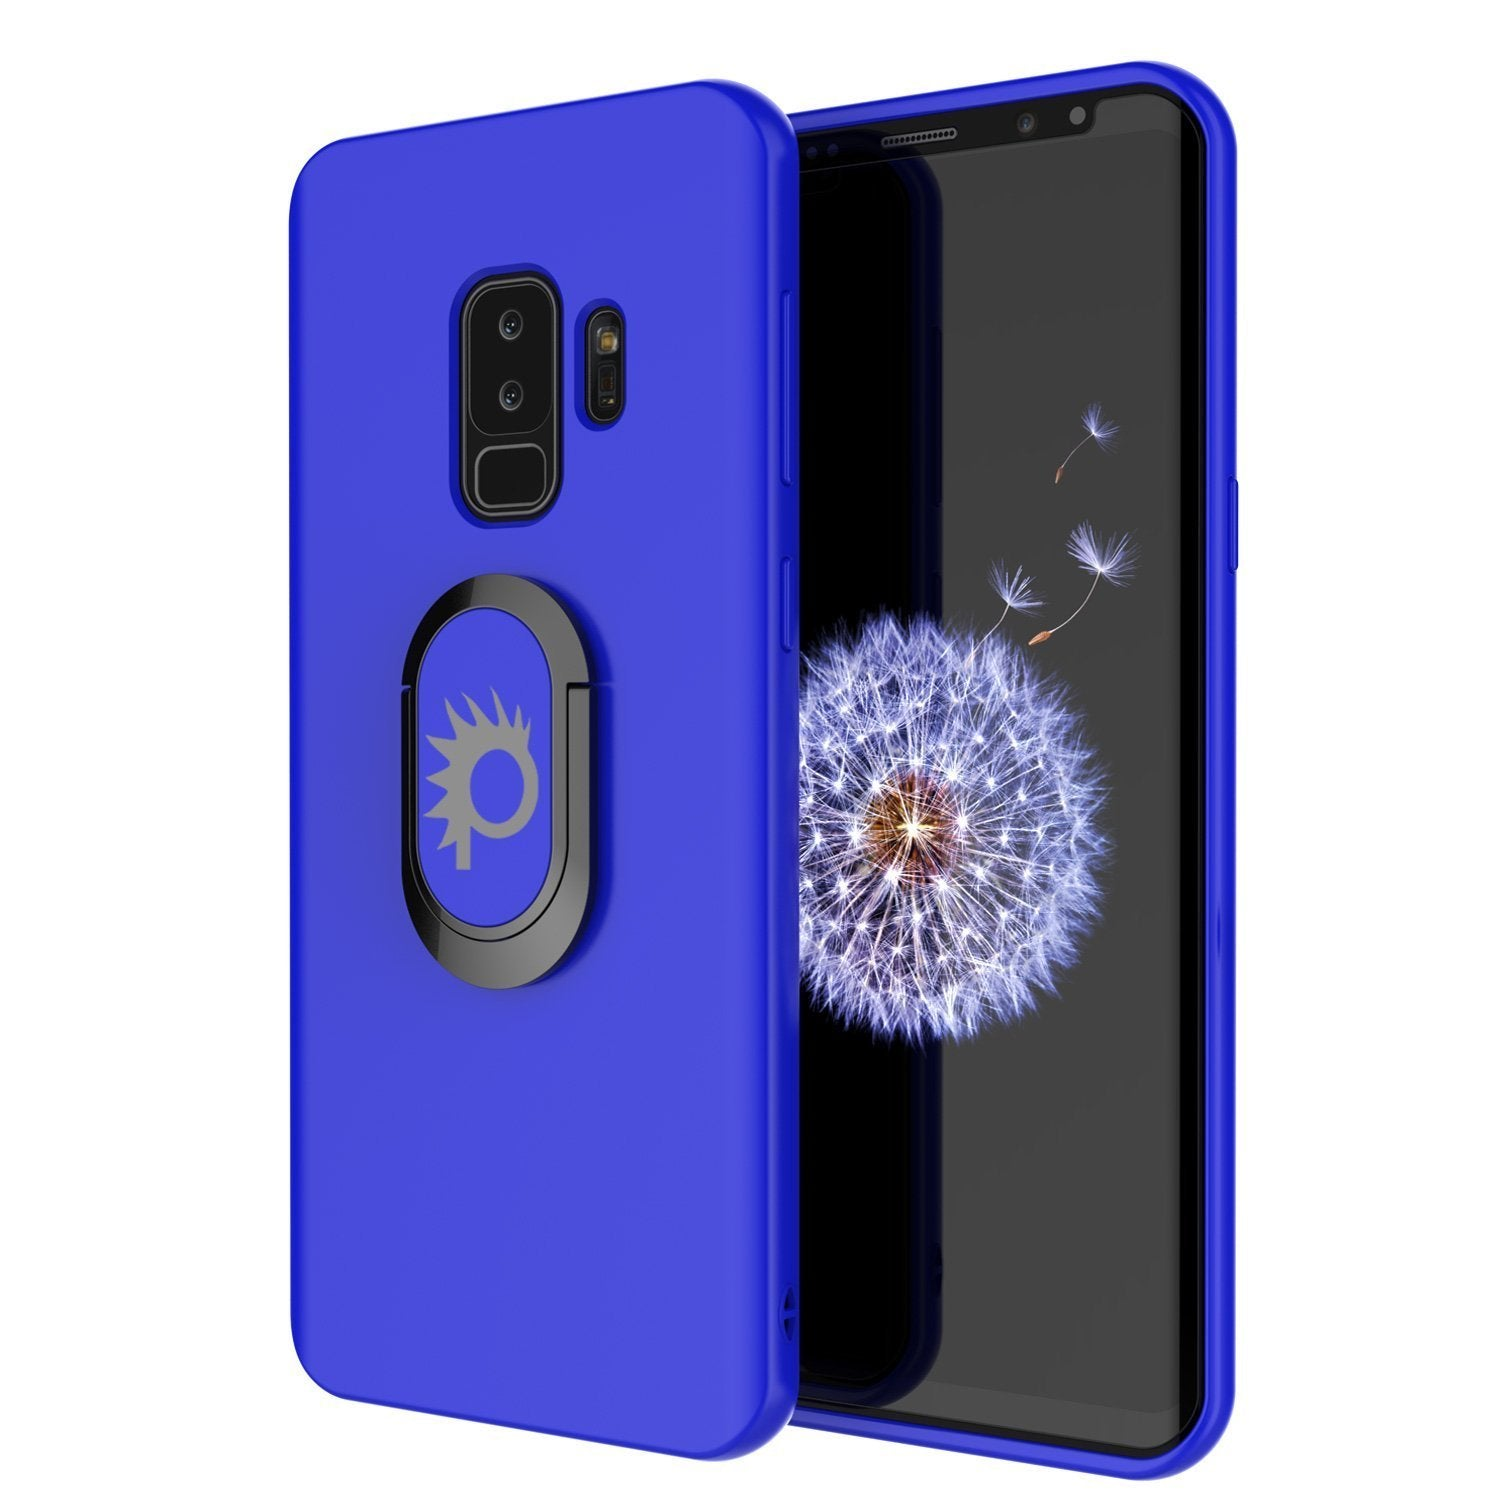 Galaxy S9 Plus, Punkcase Magnetix Cover W/ Kickstand, [Blue]